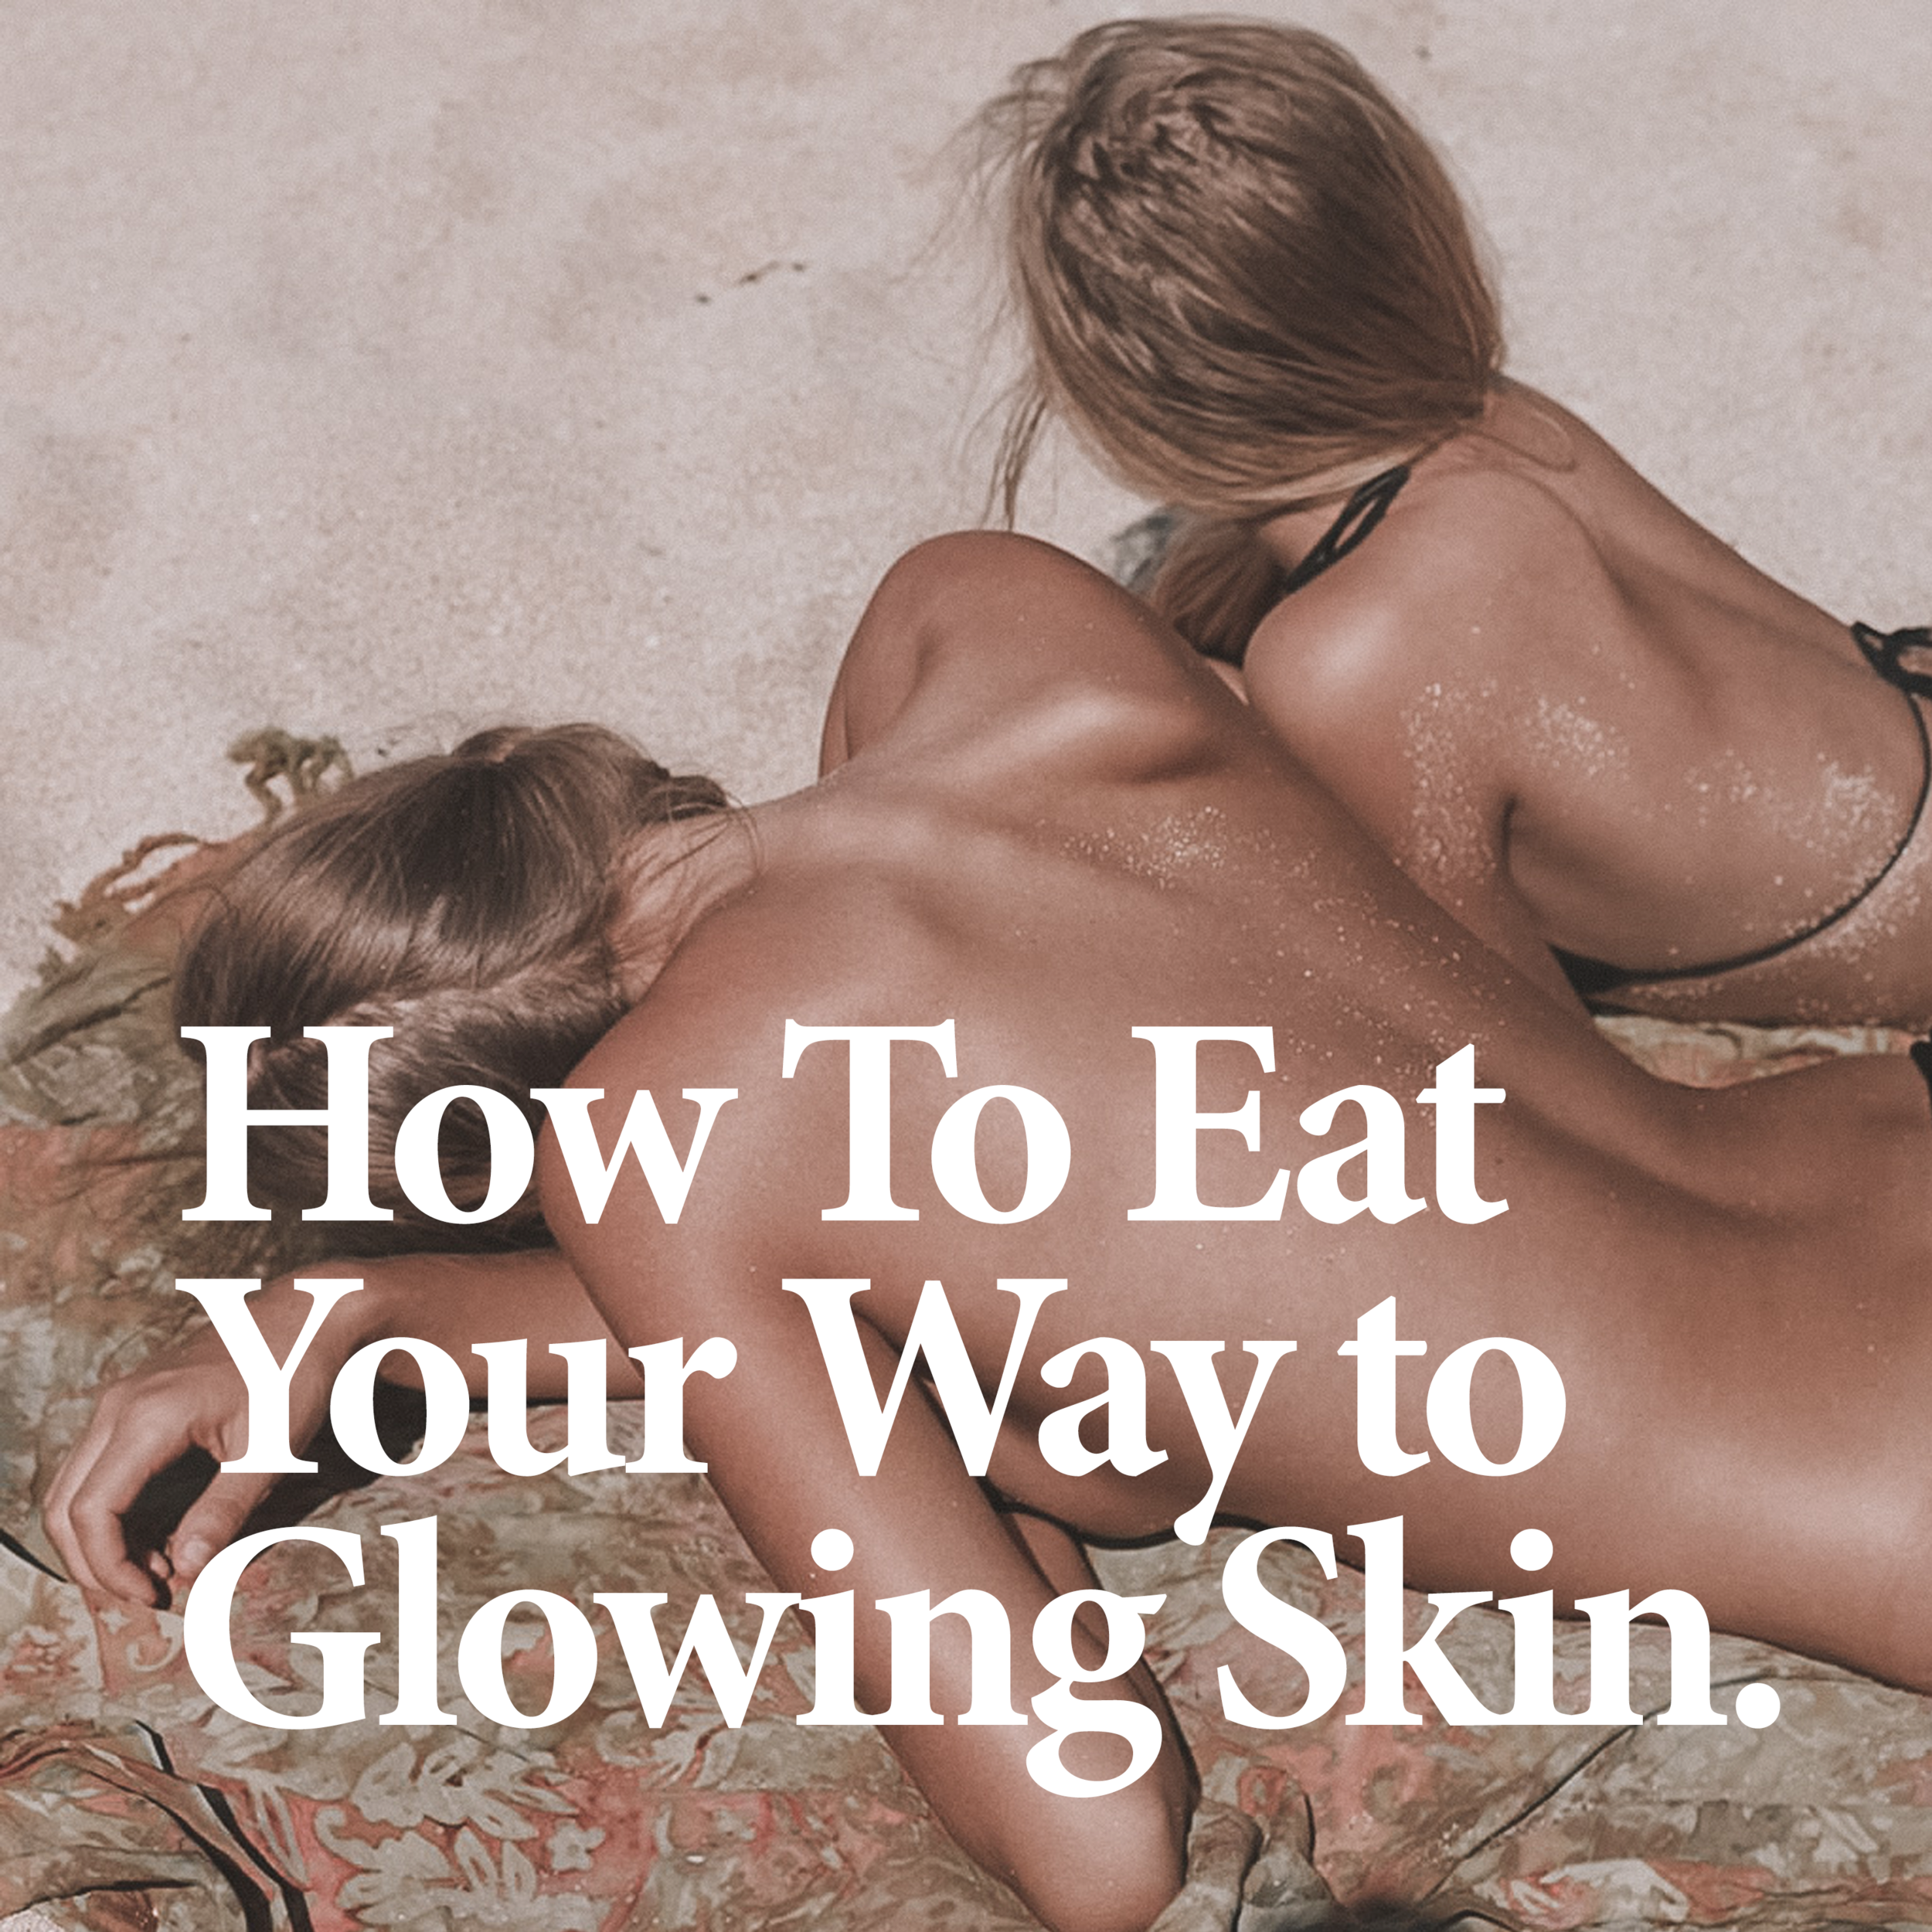 RELATED Discover more about how to introduce more moisture into your skin.